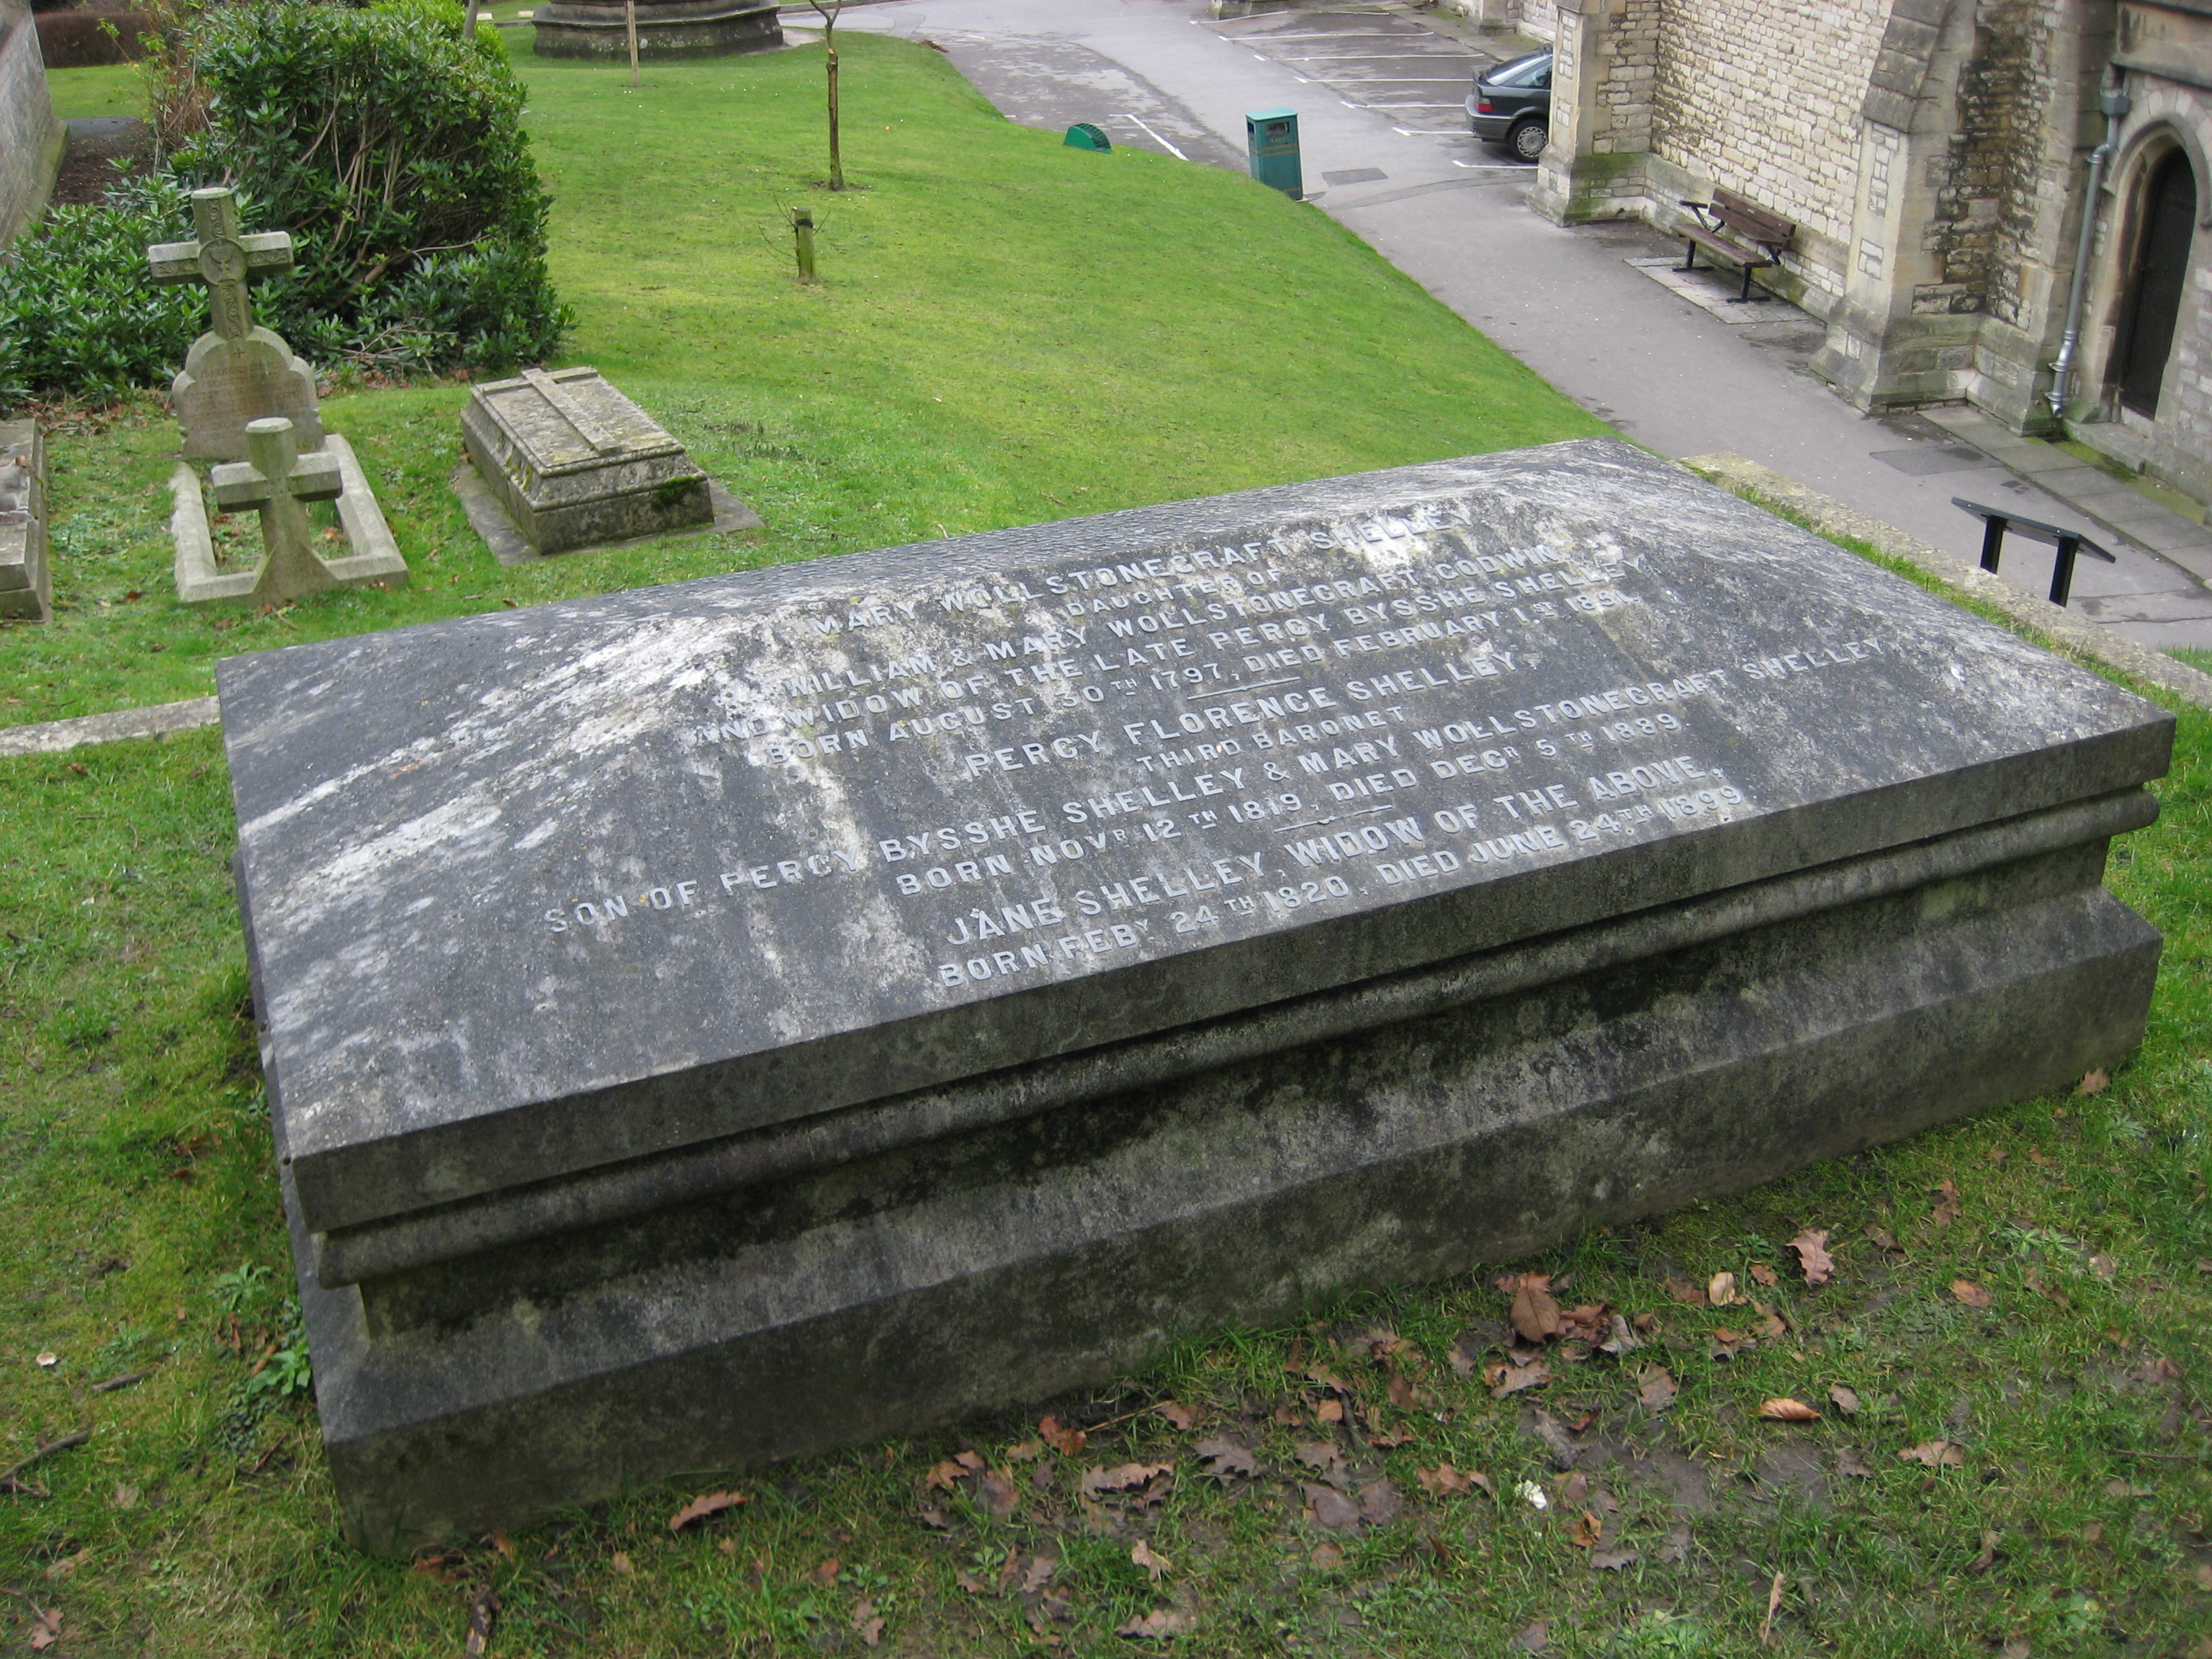 Description Wollstonecraft Shelley Grave 1.jpg